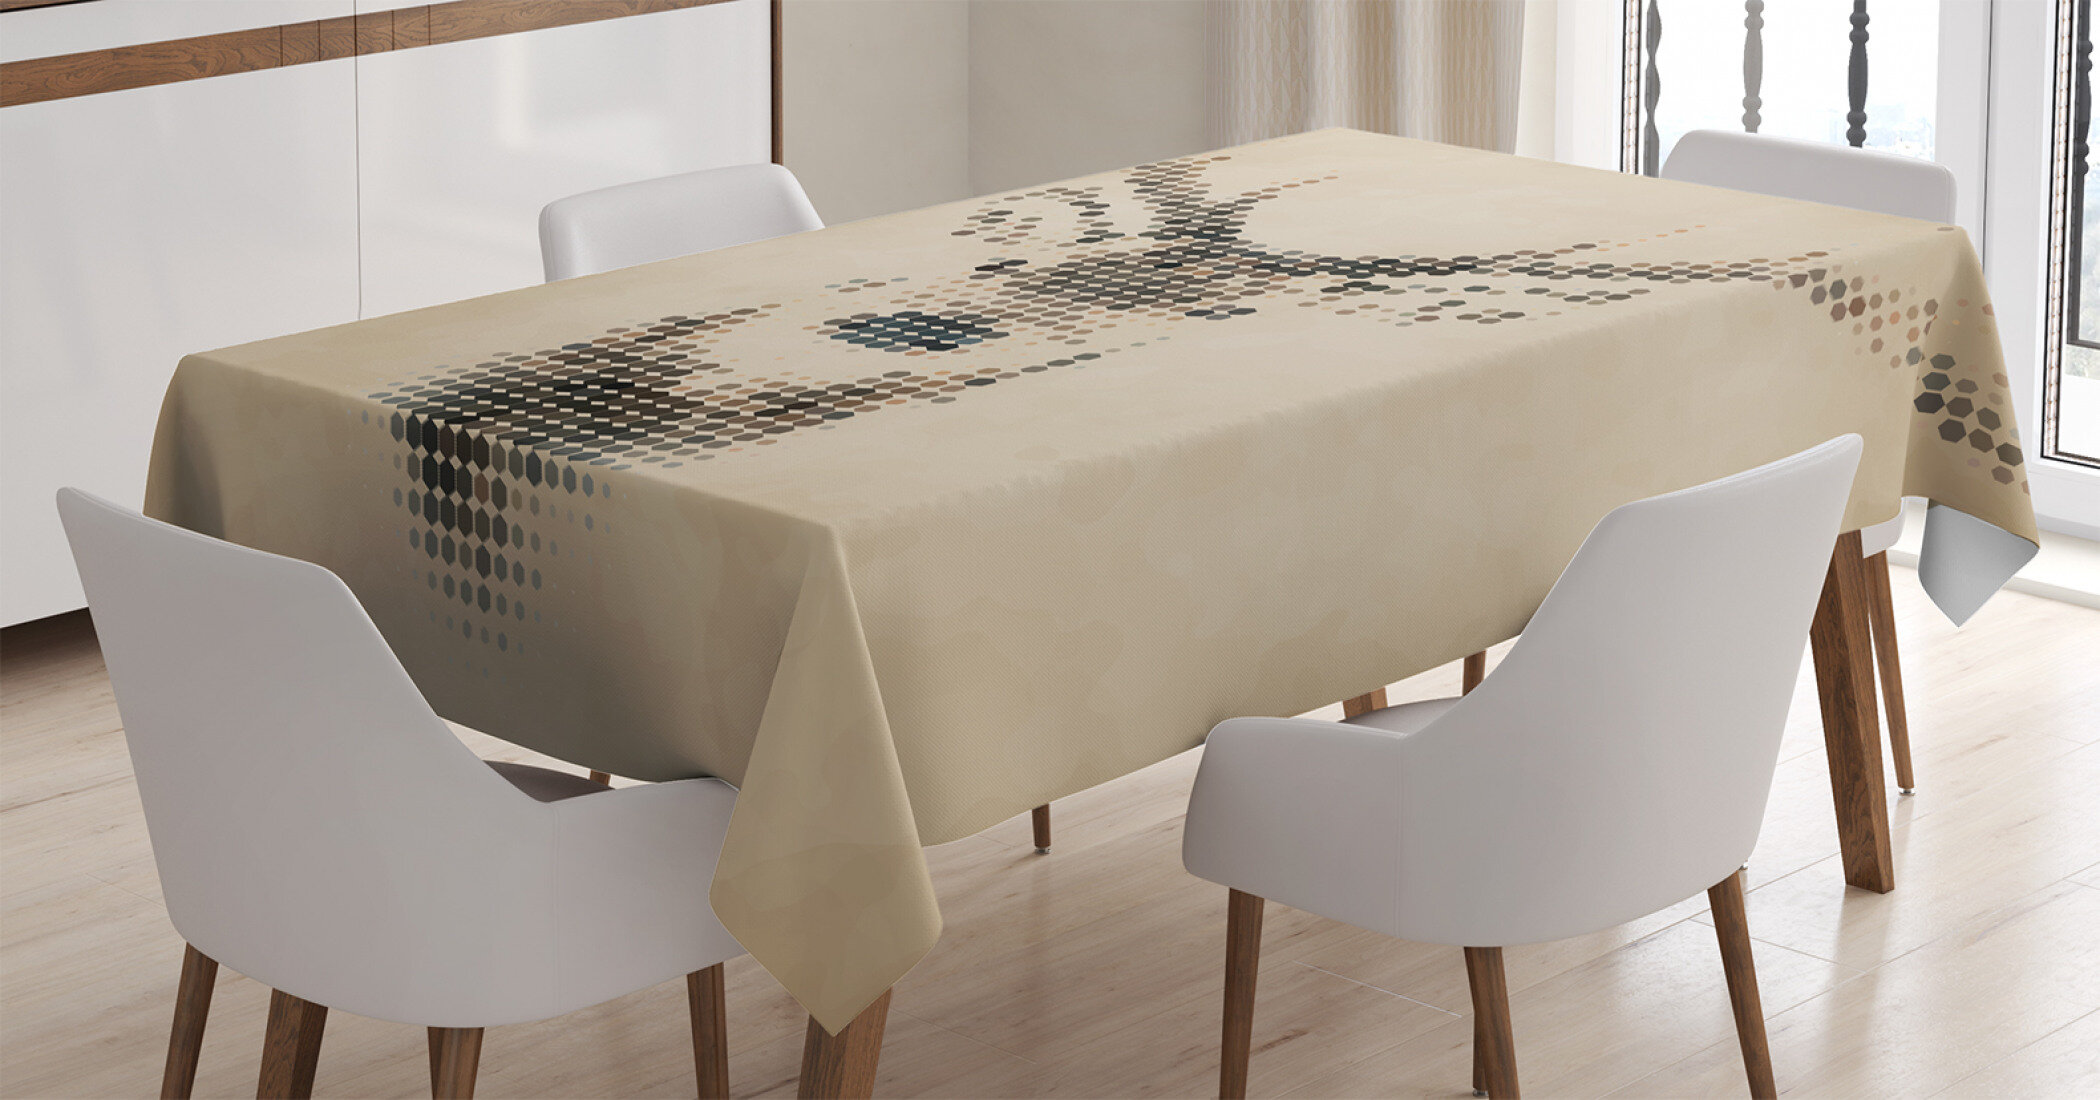 Ambesonne Vintage Table Runner Dining Room Kitchen Decor in 3 Sizes